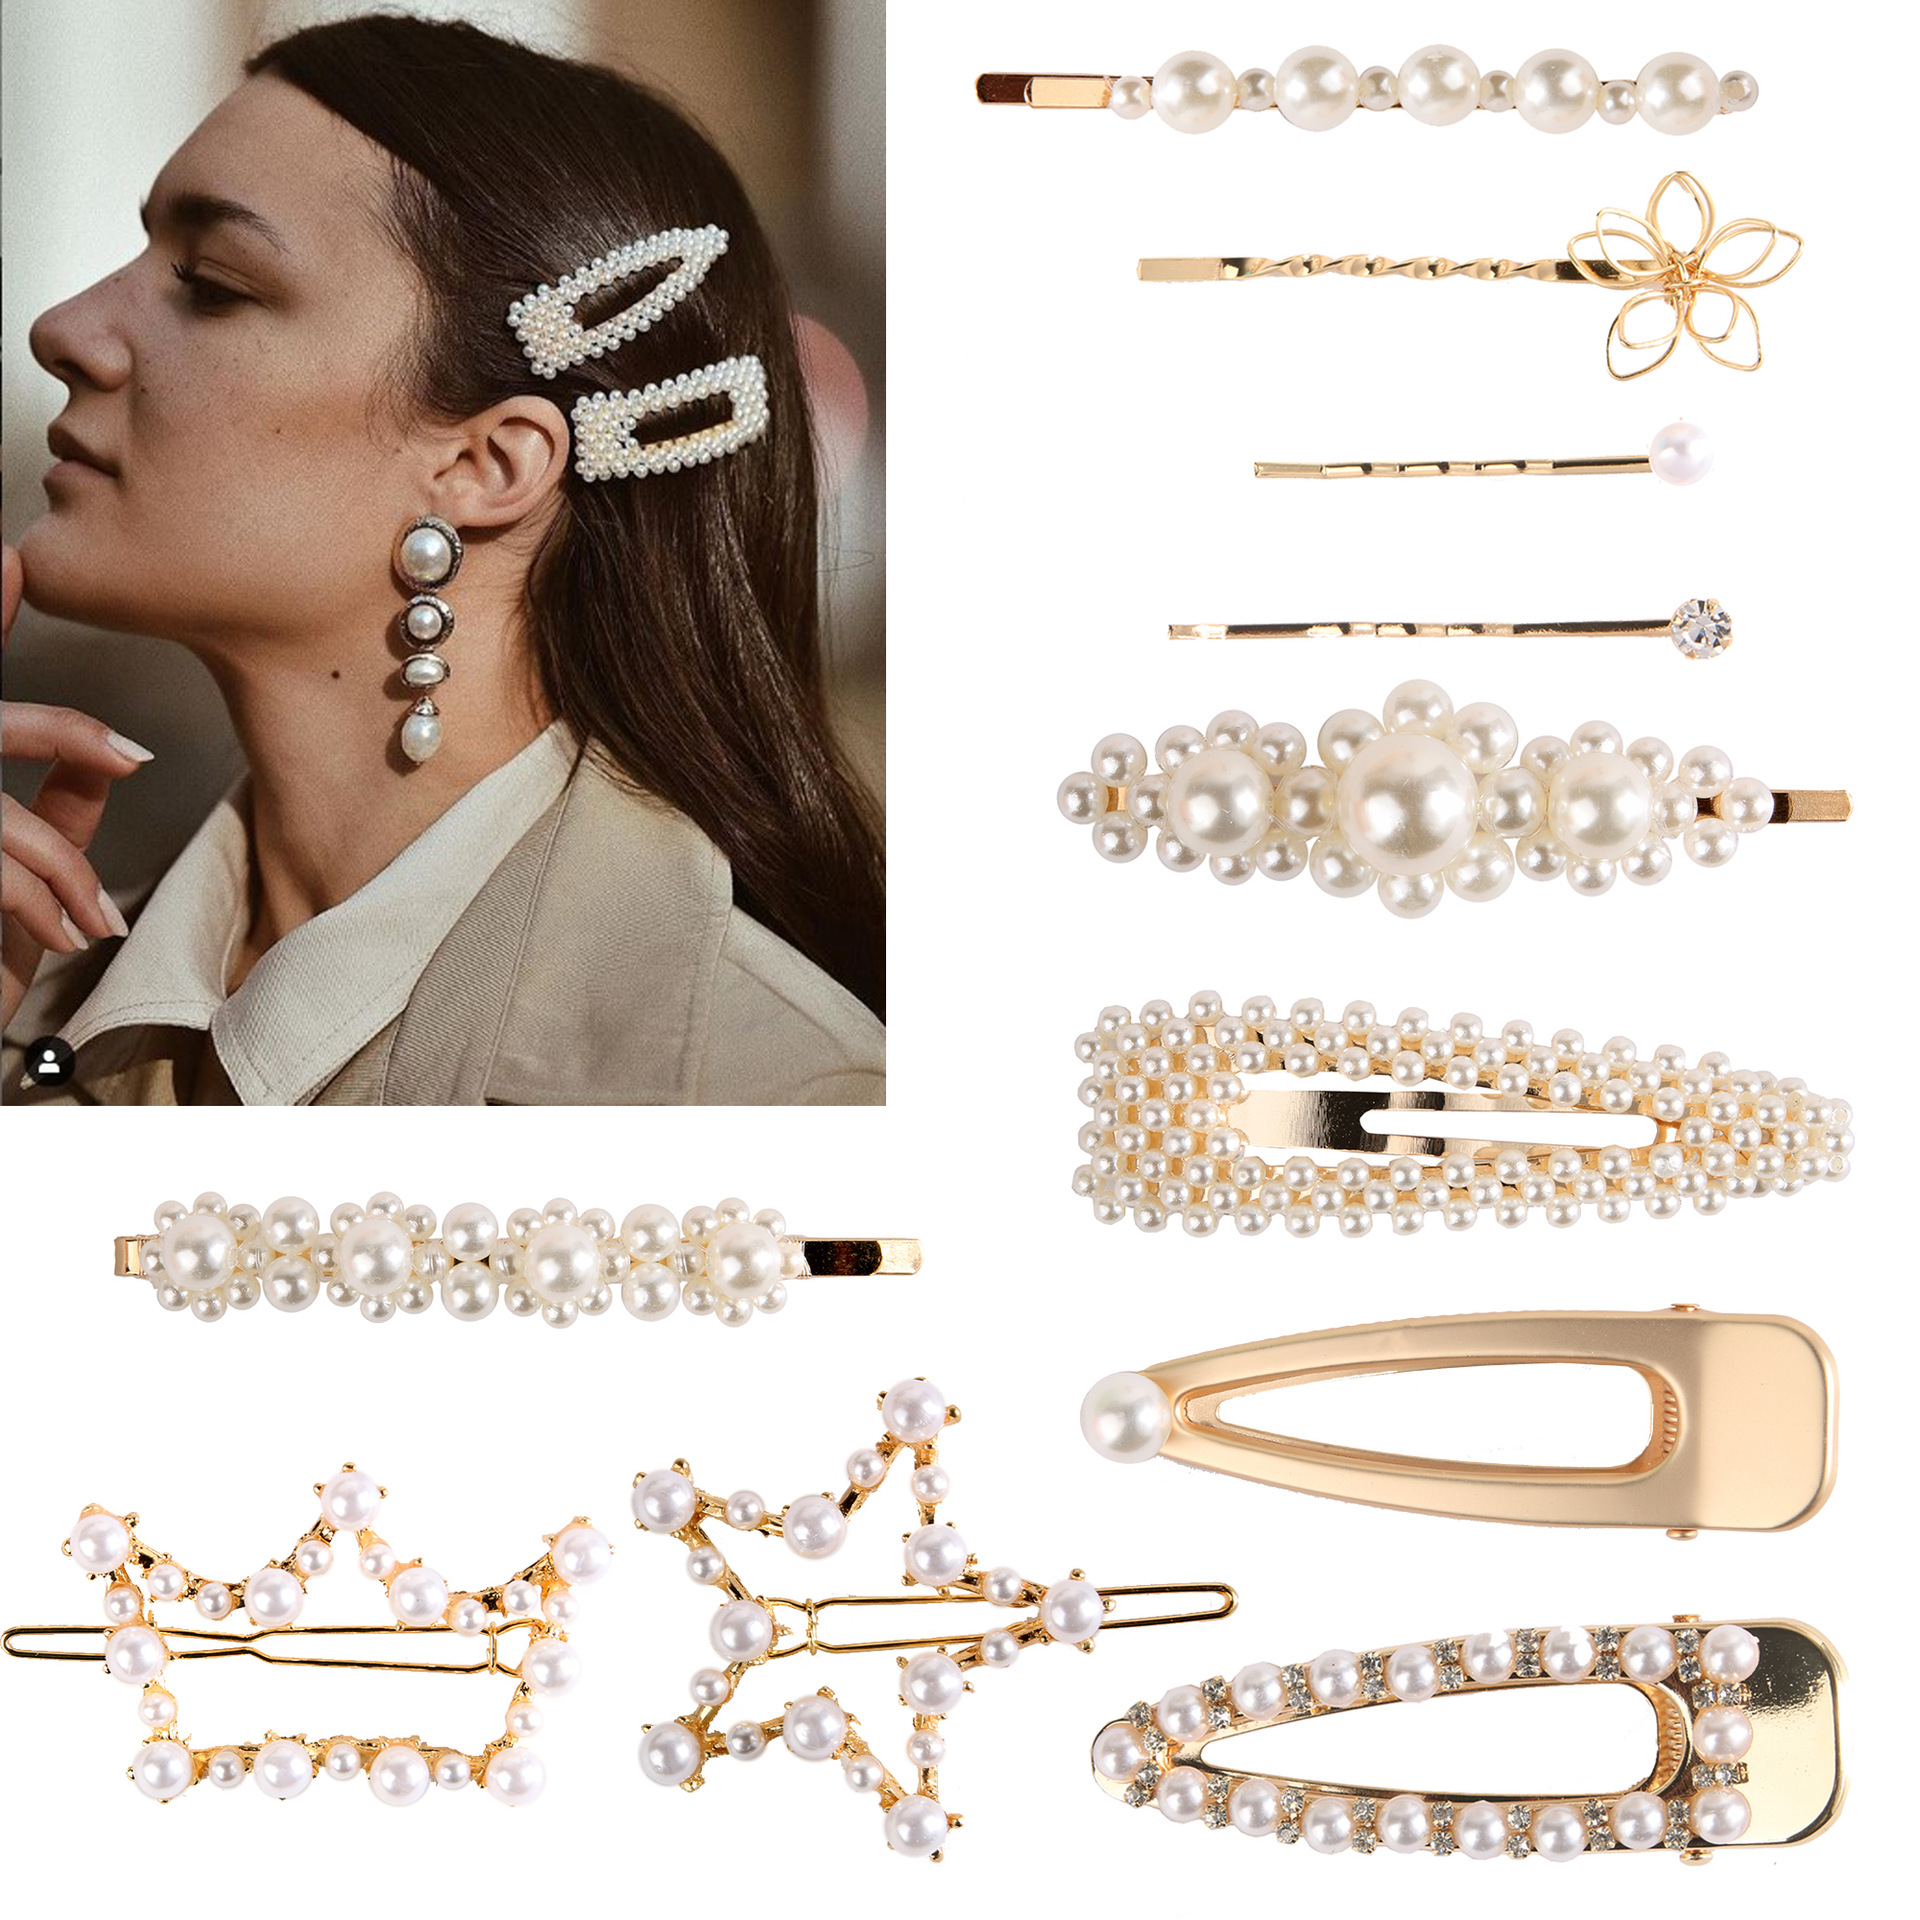 2019 Dvacaman Custom Hot Sale <strong>Hair</strong> <strong>Accessories</strong> Handmade Pearl Hairpin for Wedding